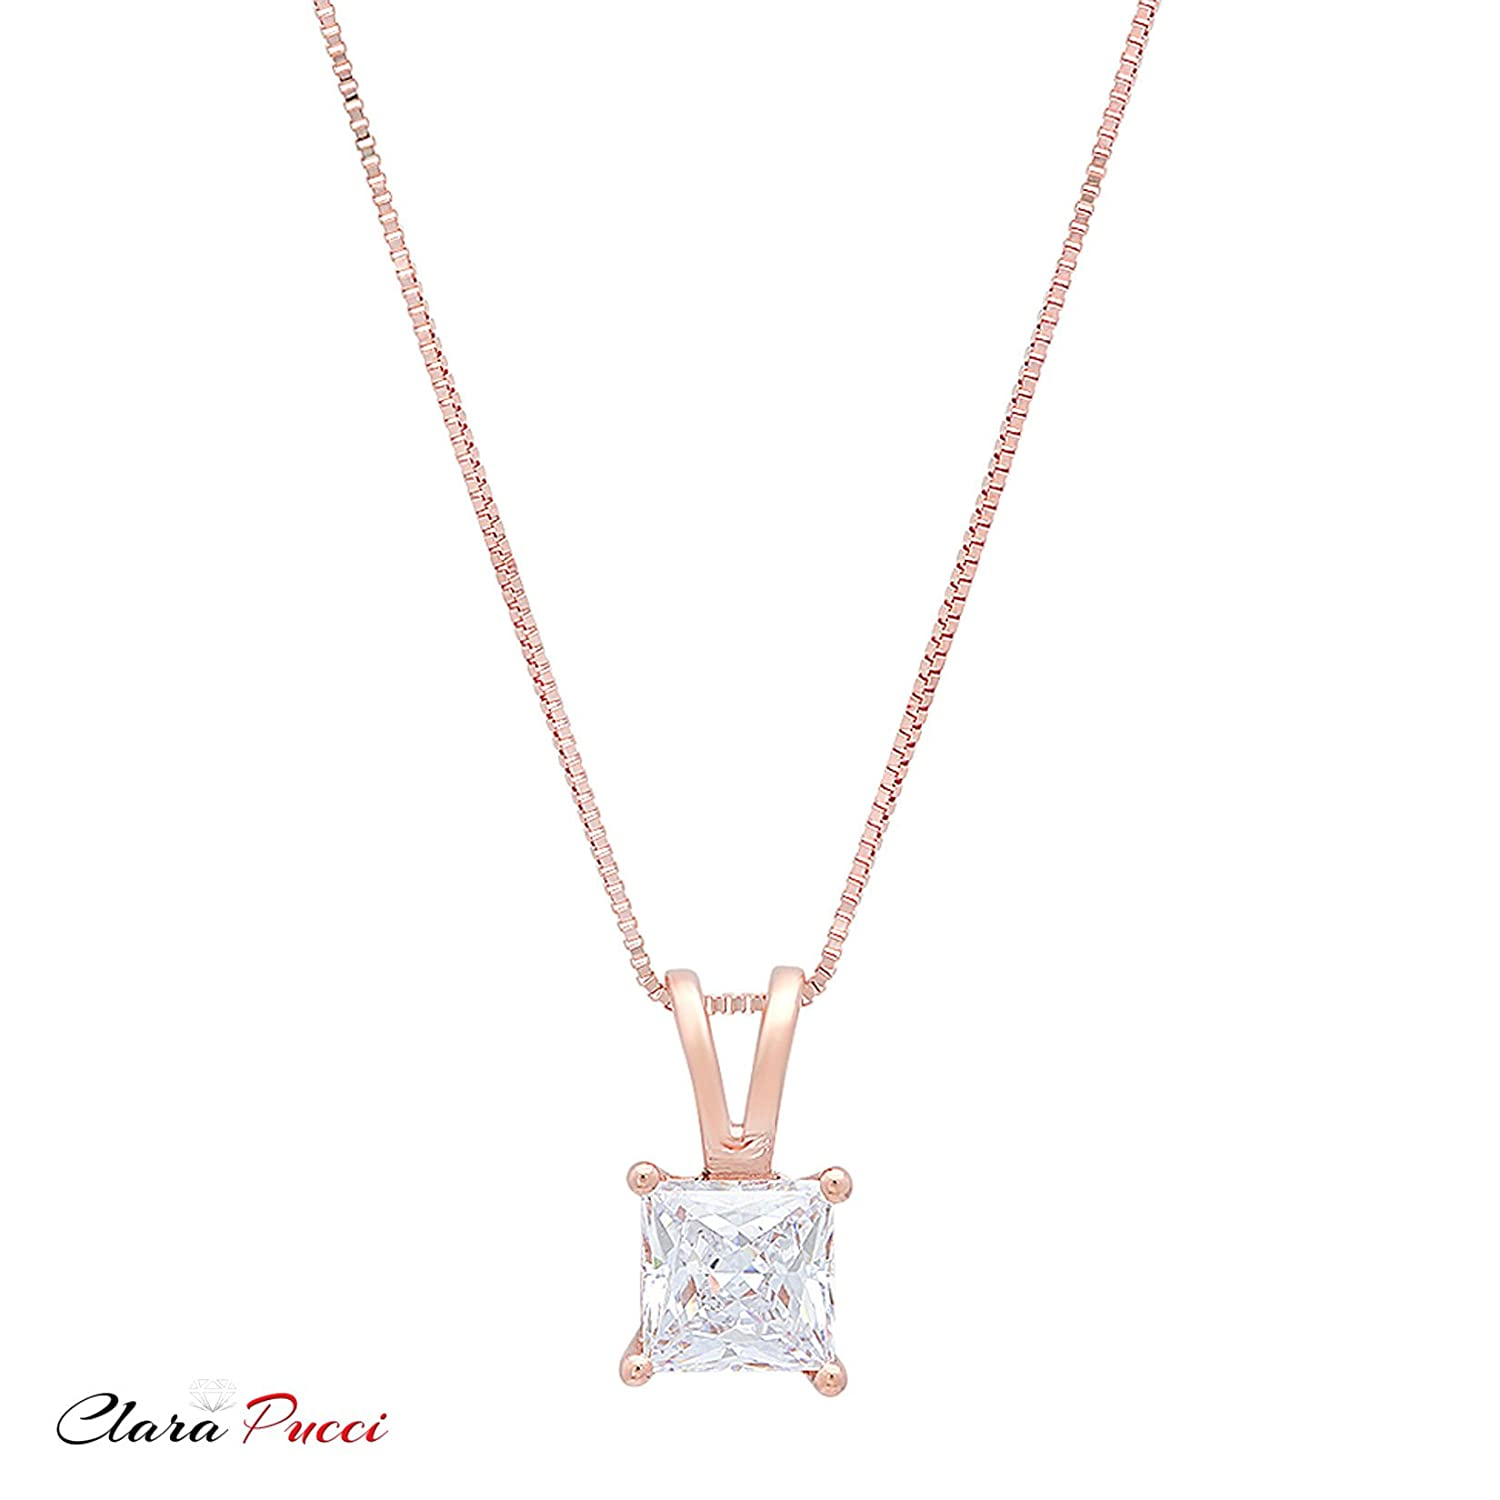 Clara Pucci 1.20 CT Princess Cut Simulated Diamond Solid 14K Rose Gold Solitaire Pendant Box Necklace 16 Chain